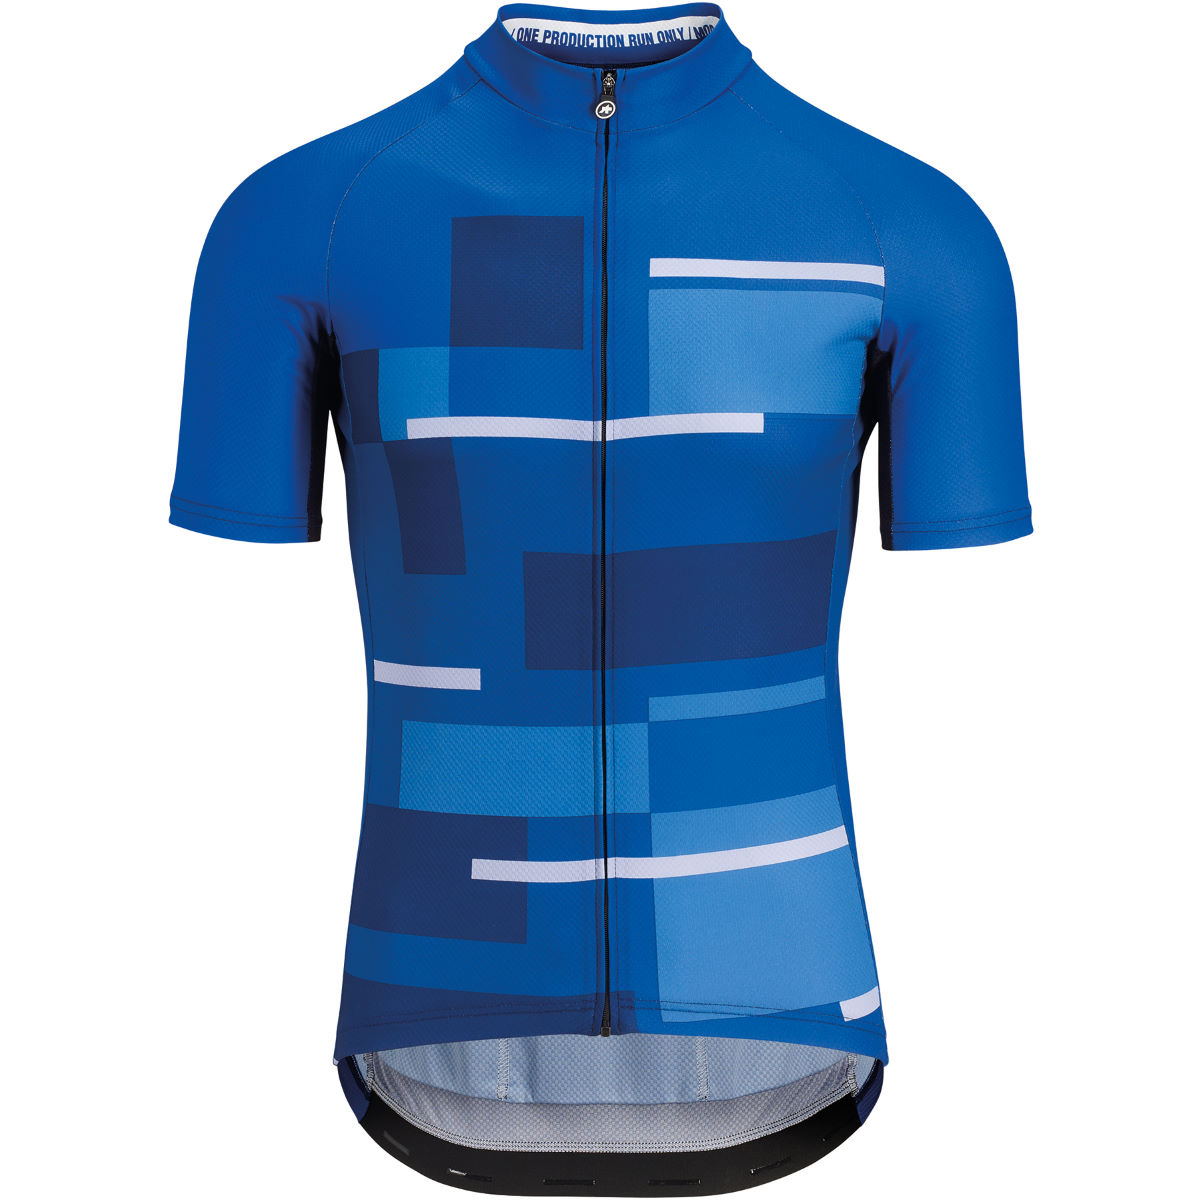 Assos Fast Lane Anthracite Jersey (Navy Blue) Jerseys